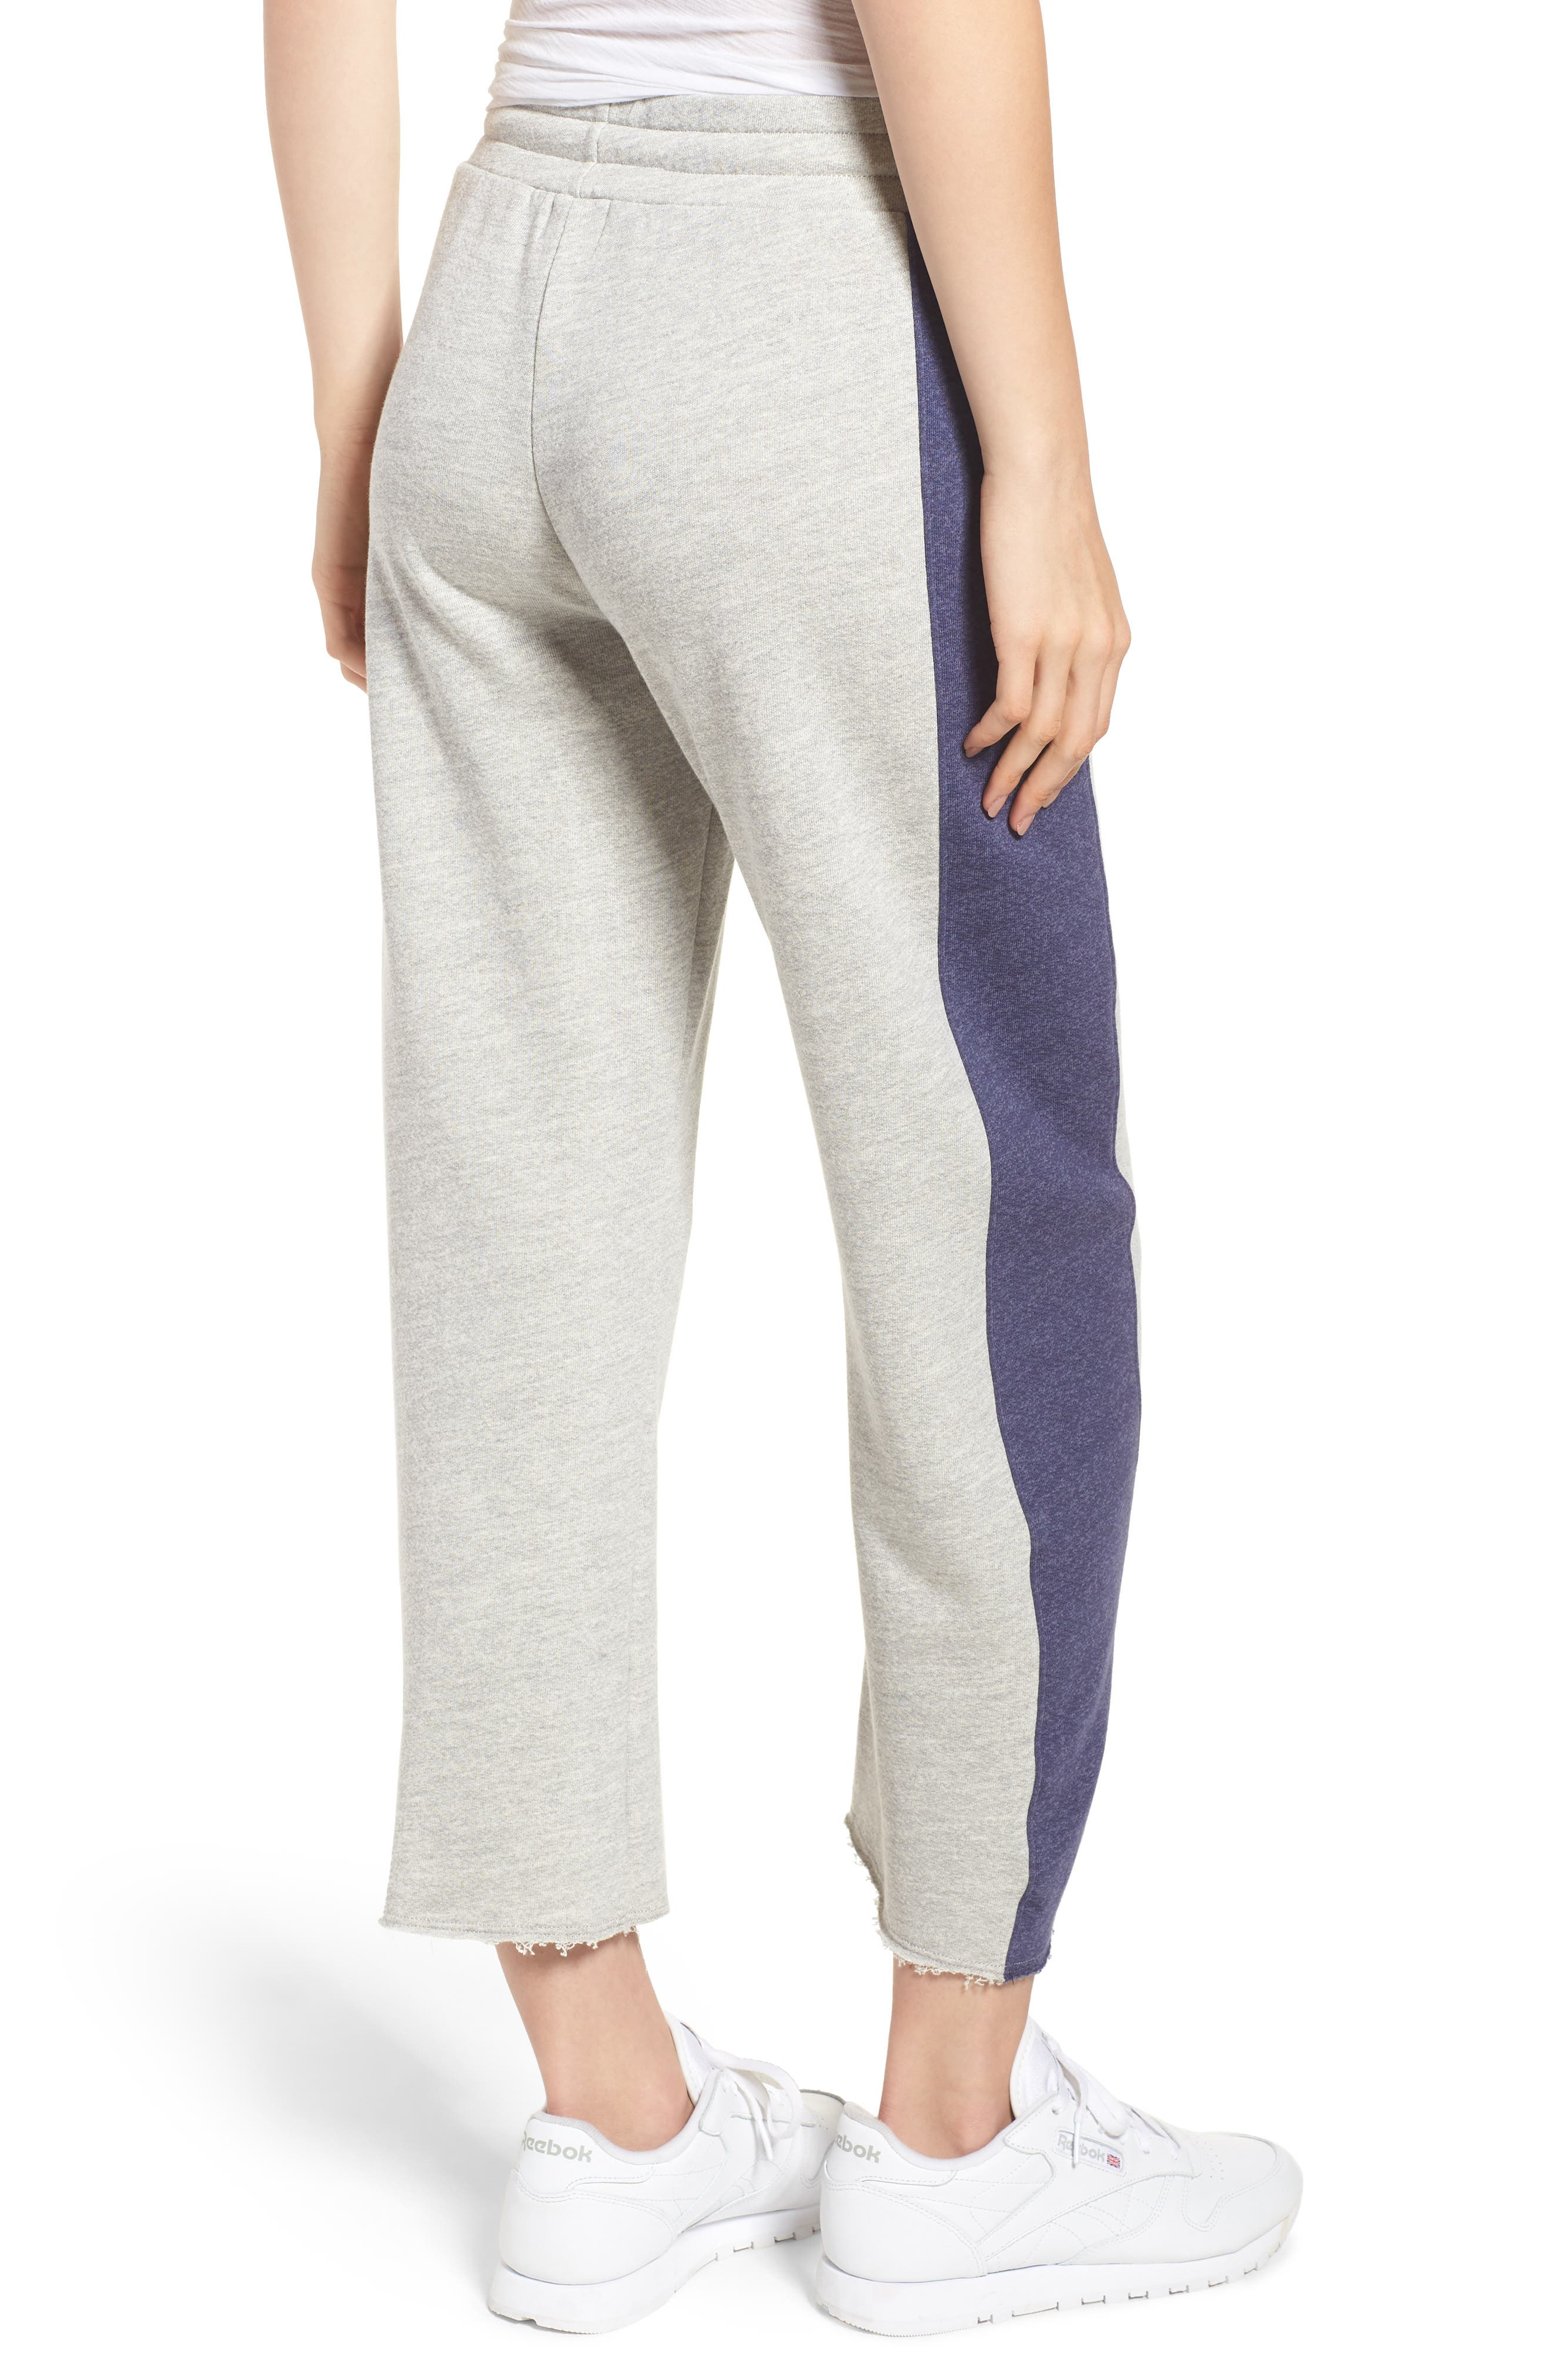 Terry Colorblock Sweatpants,                             Alternate thumbnail 2, color,                             Heather Grey